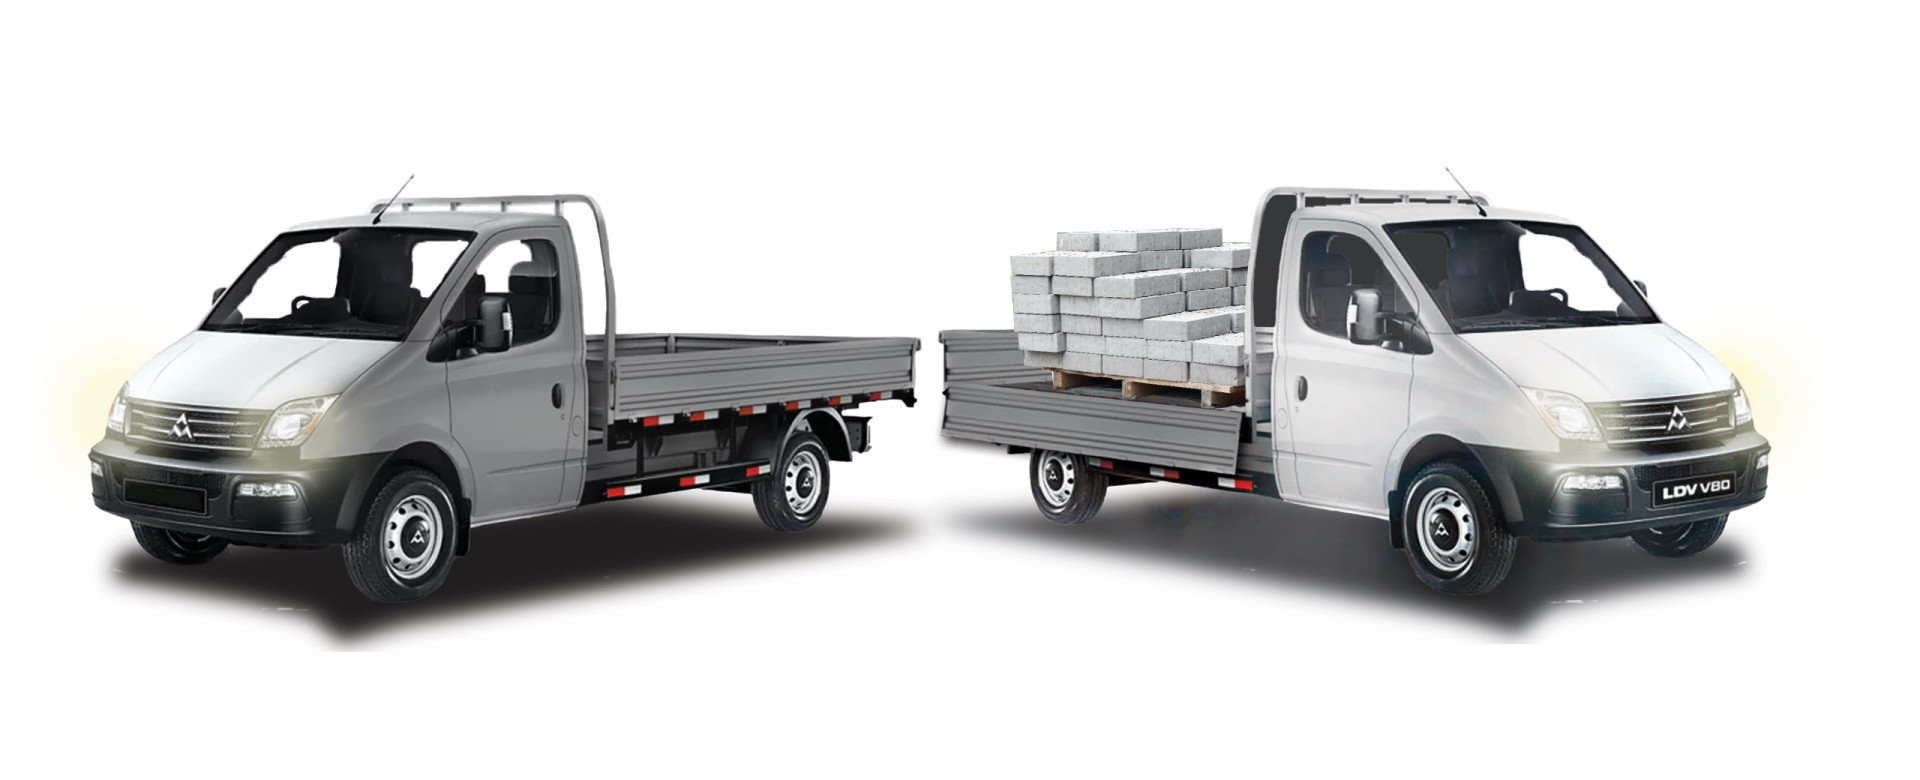 2a15b7f2d0 V80 Tipper – Official site for LDV in Ireland